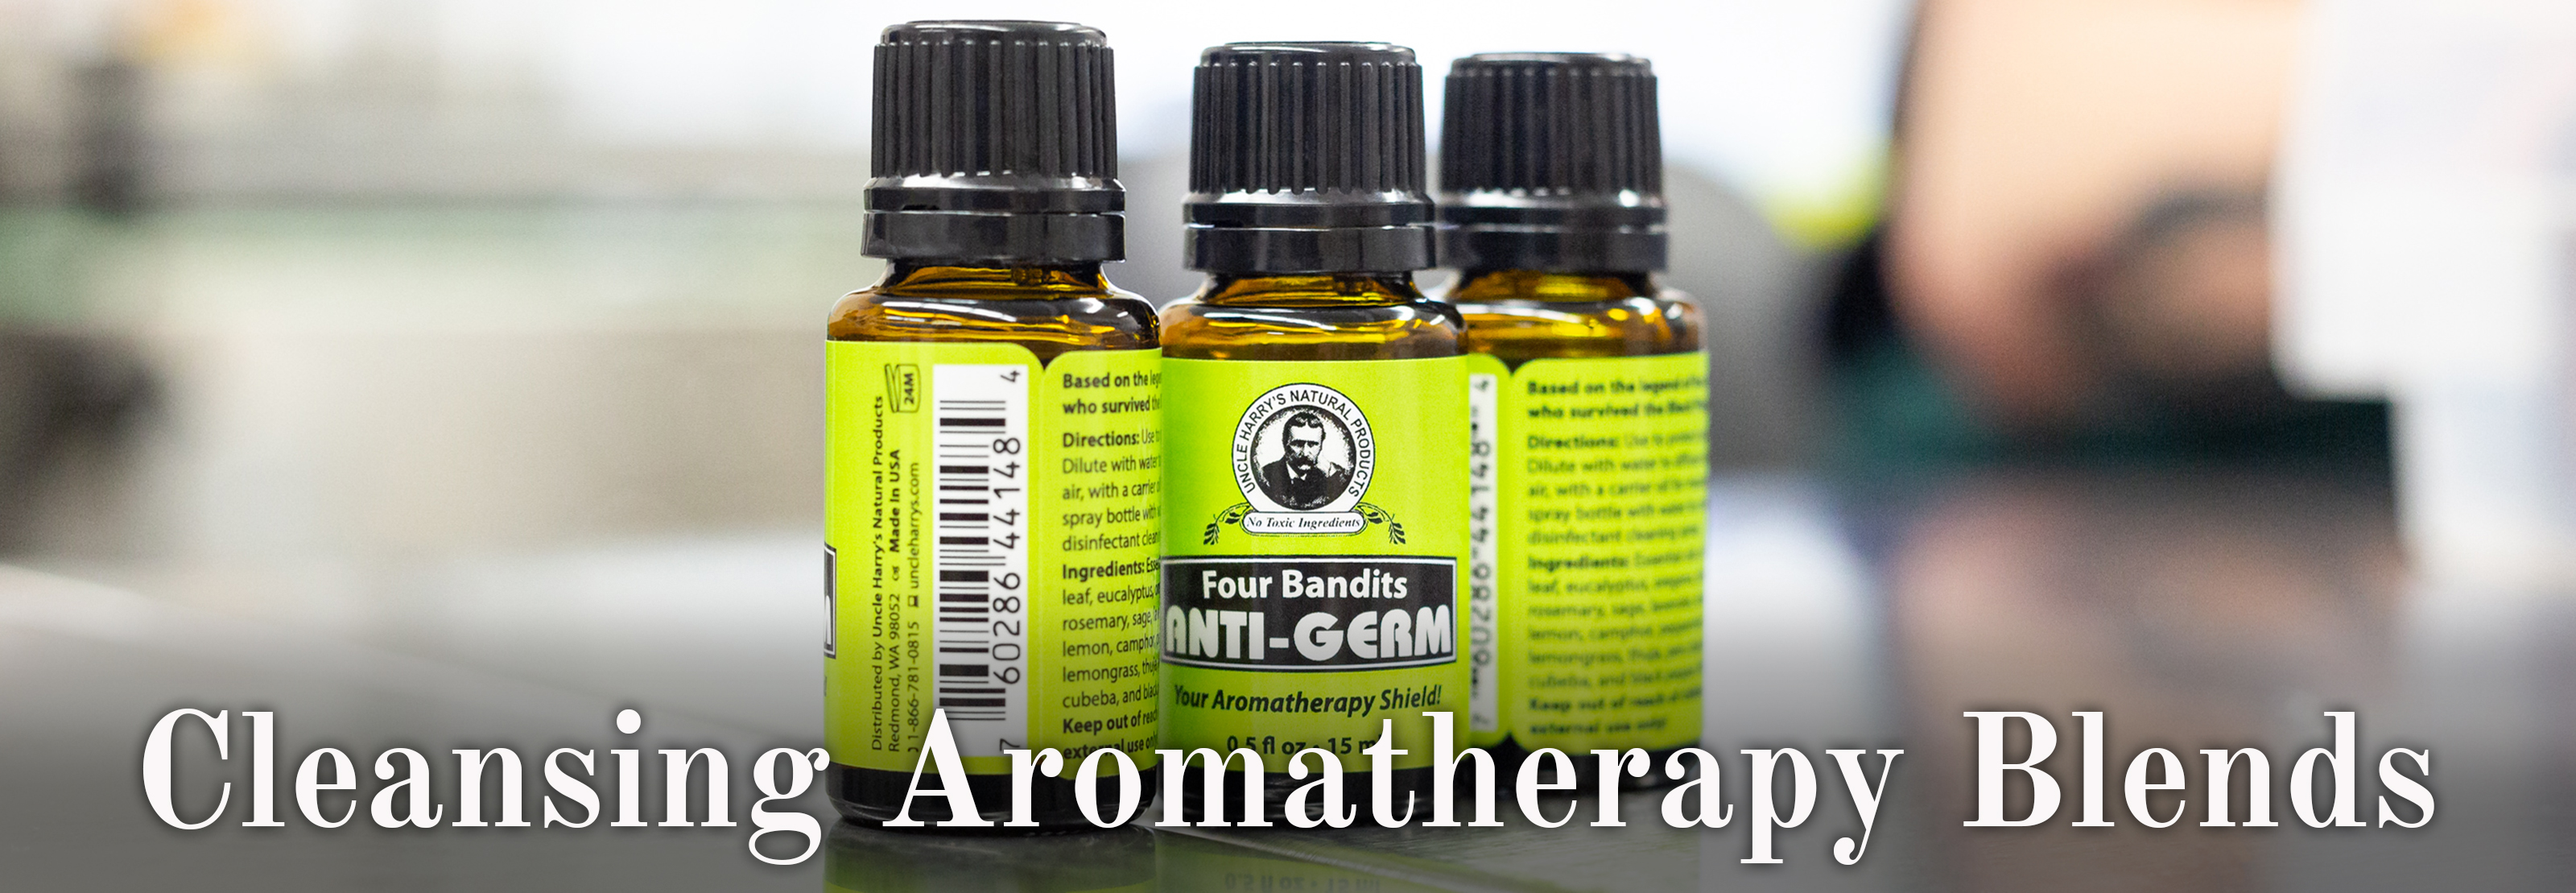 Cleansing Aromatherapy Blends